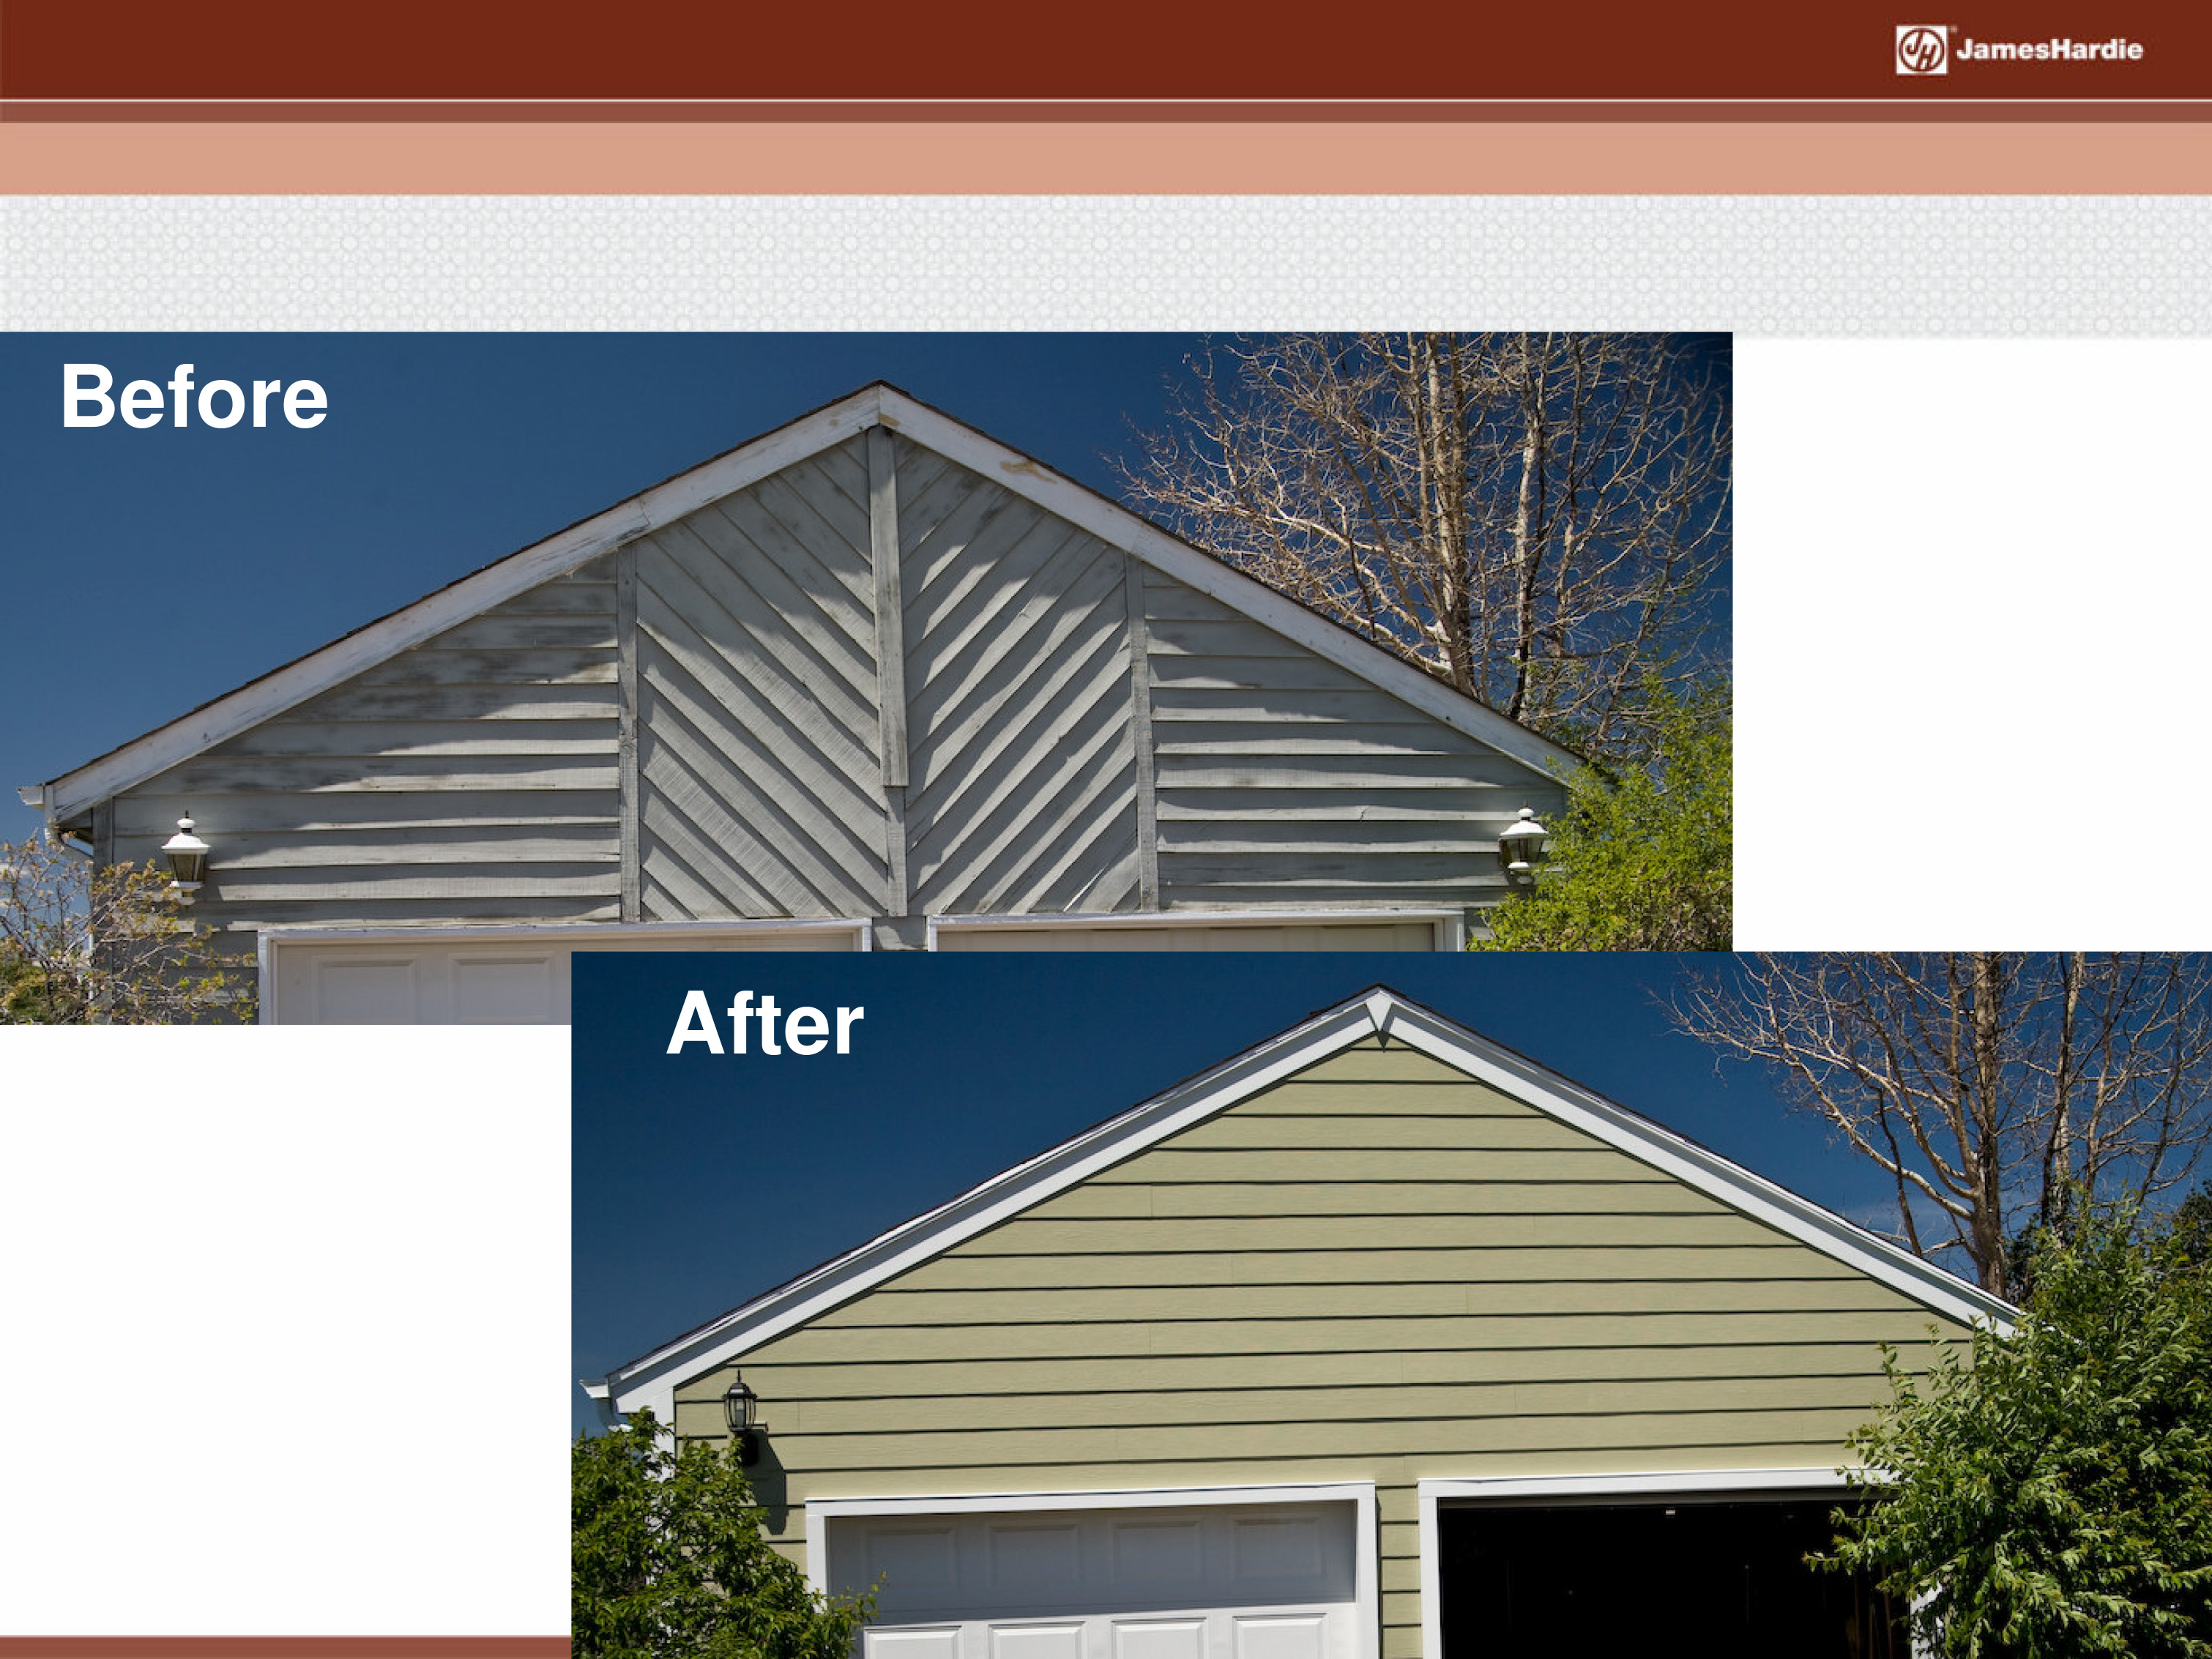 Before and After James Hardie Siding 2